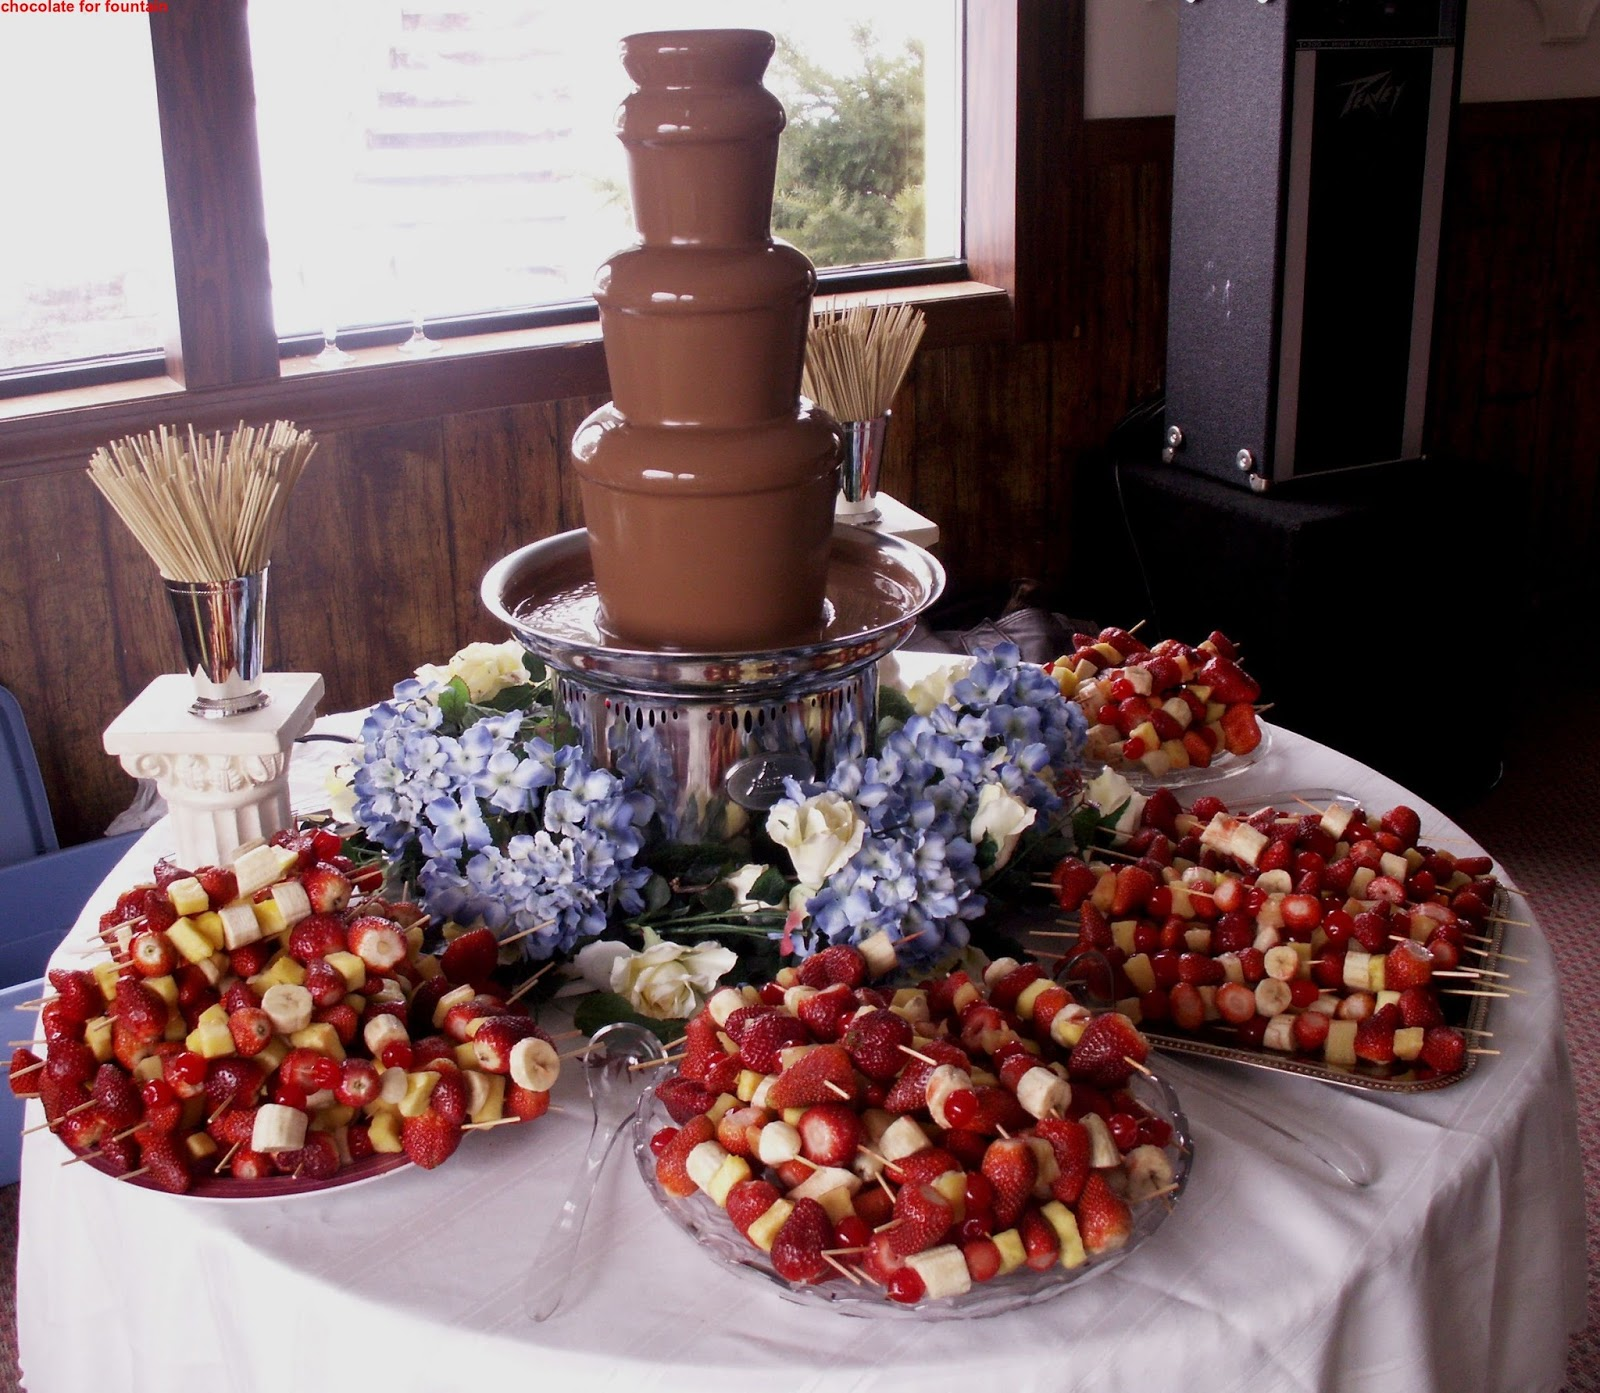 Chocolate For Fountain 2015 - The Best Party Cake